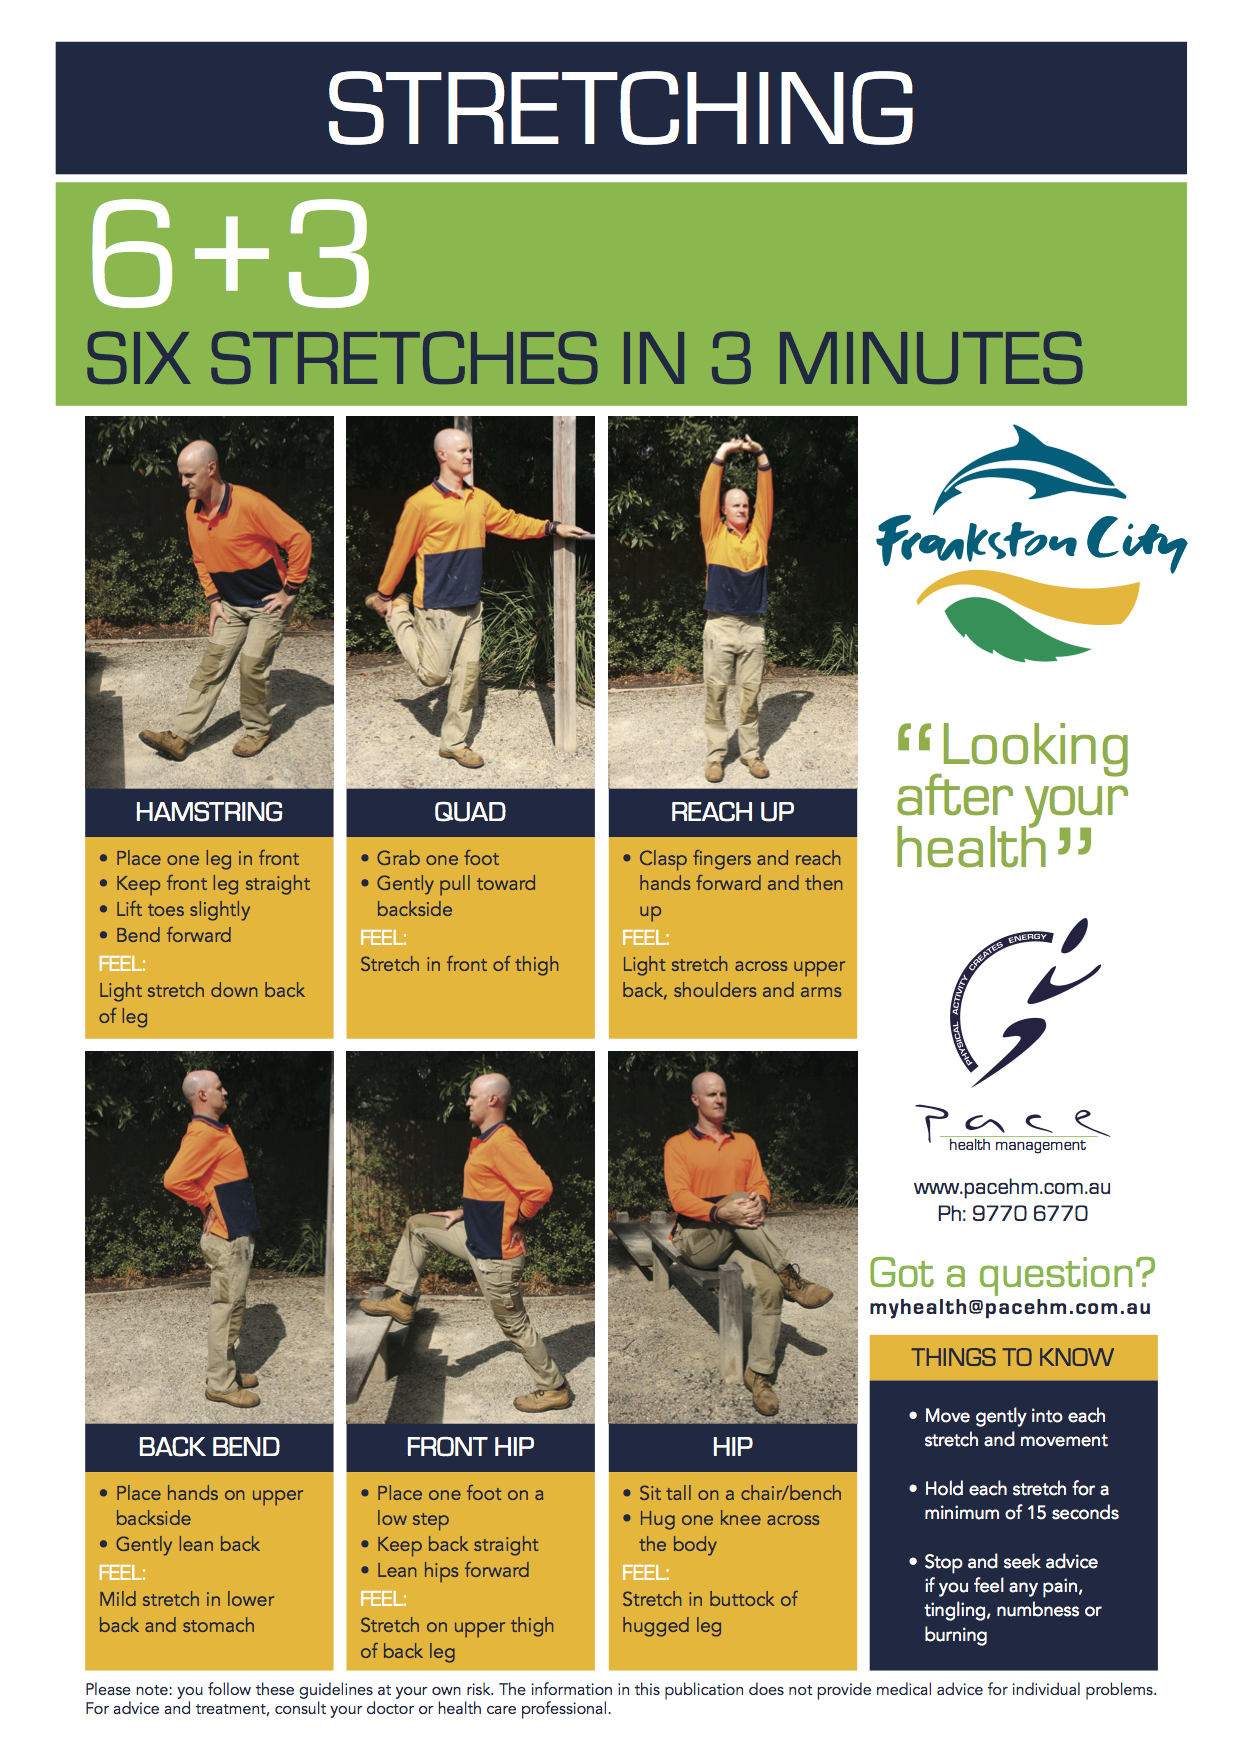 An example of a work ready stretching routine!